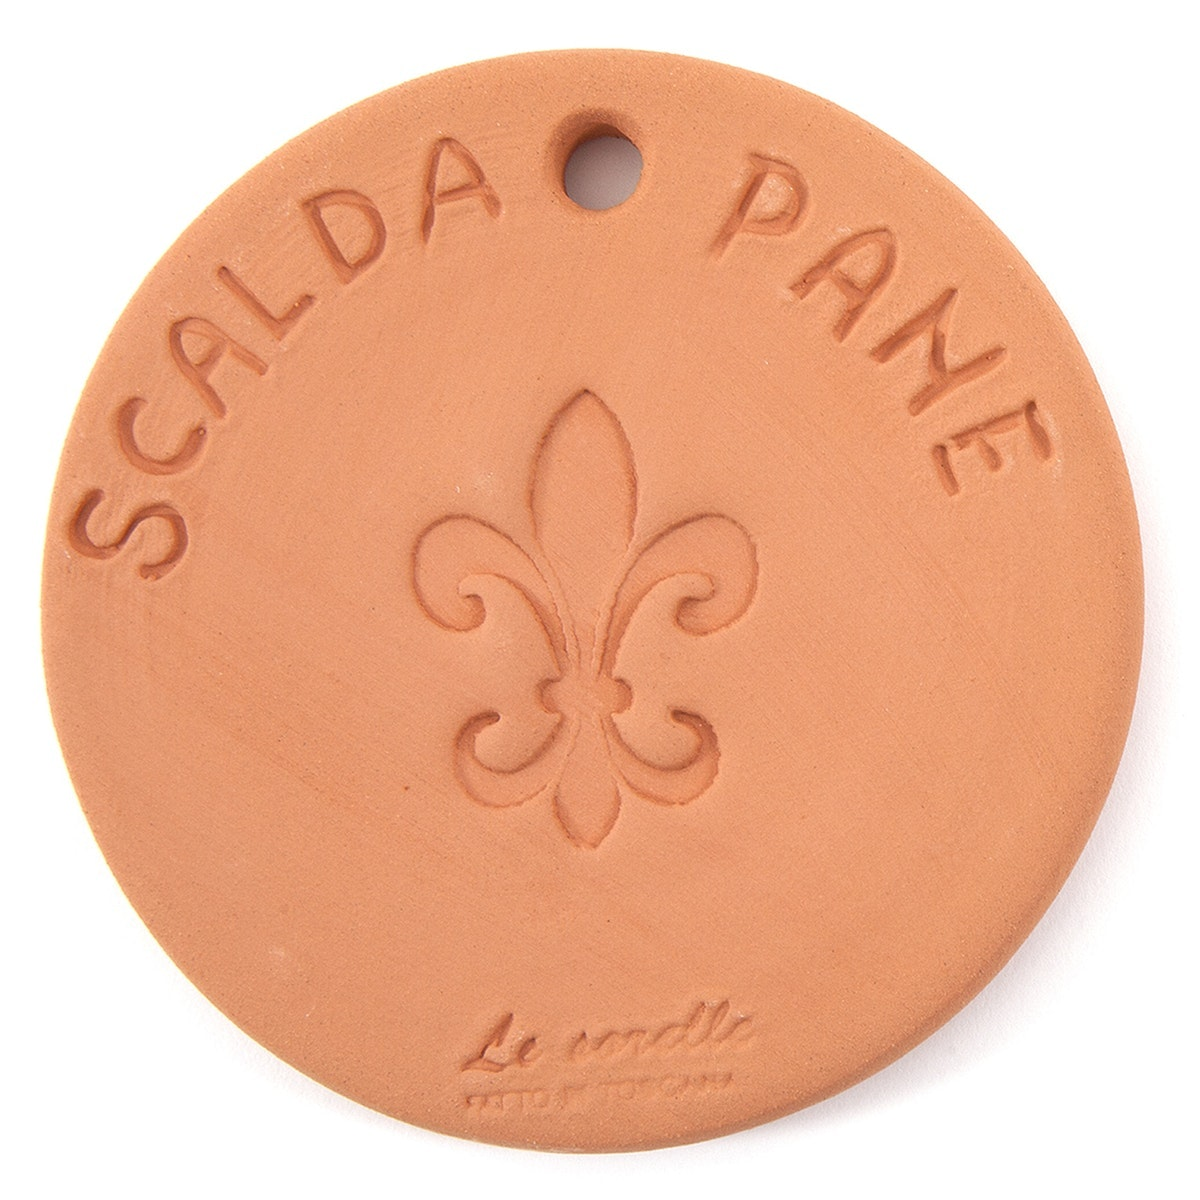 Terracotta Scaldapane